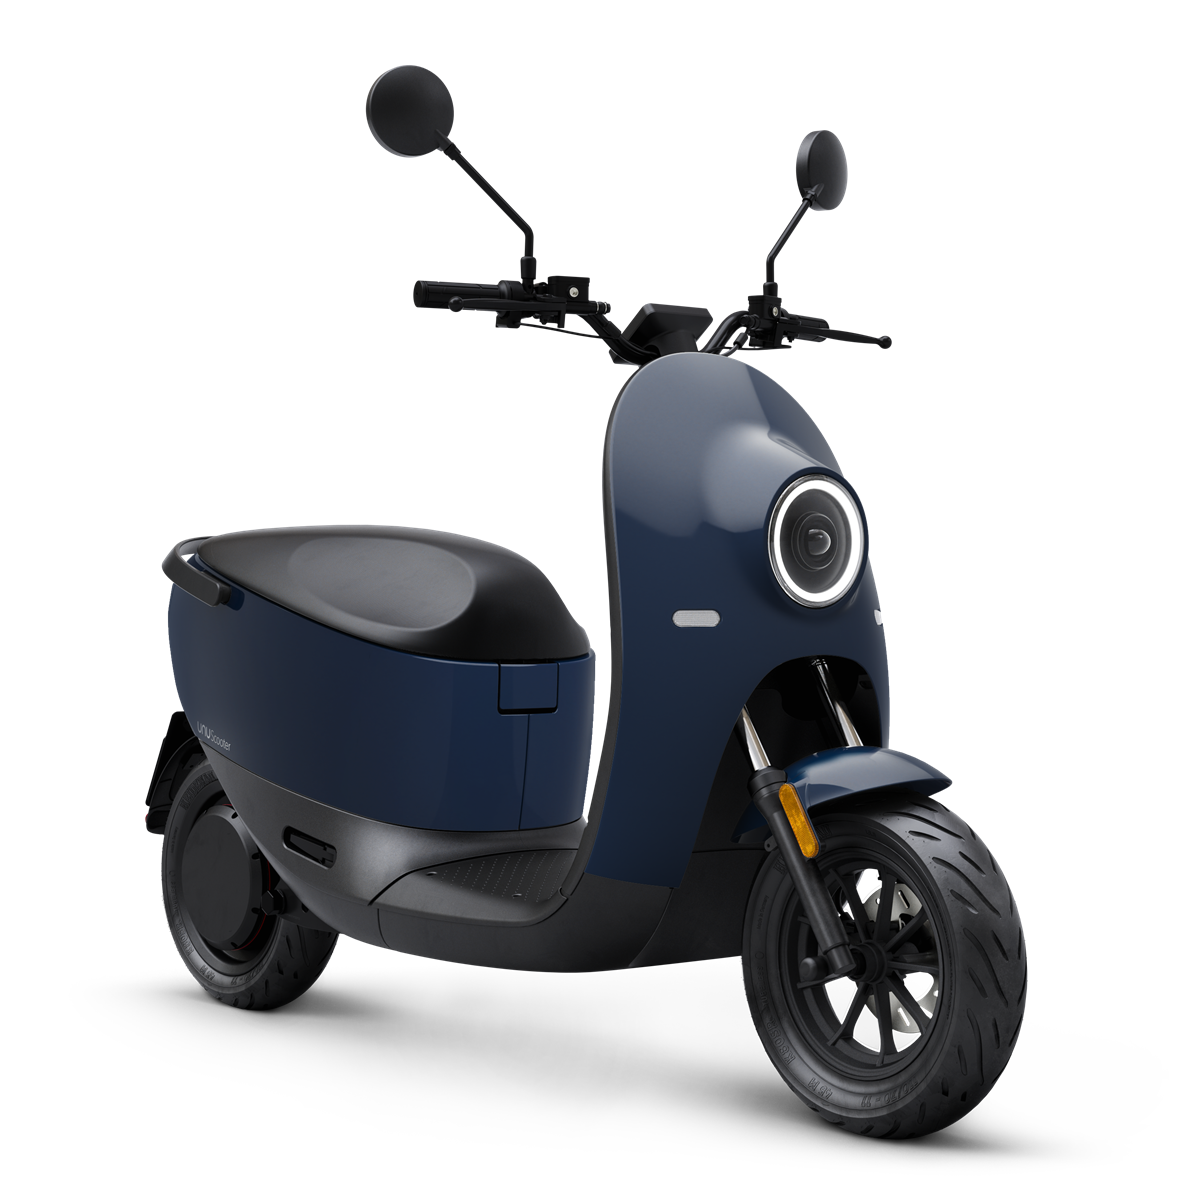 unu Scooter_Glossy Blue_ab EUR 2.799